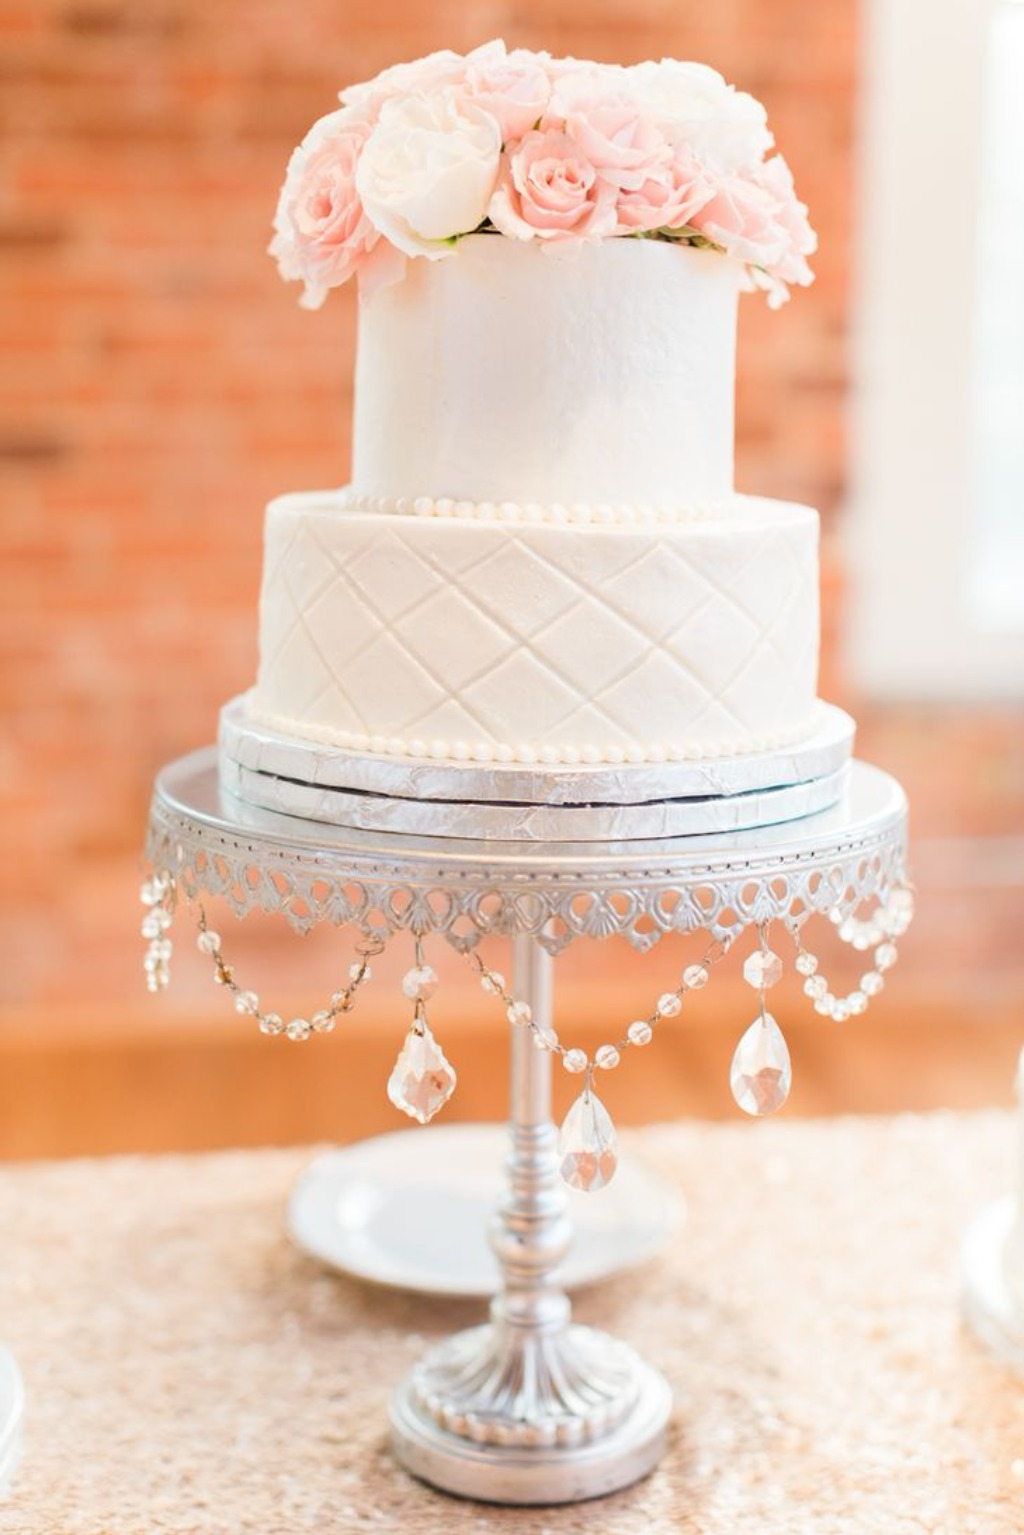 White tiered wedding cake, fresh flowers & silver chandelier accents!